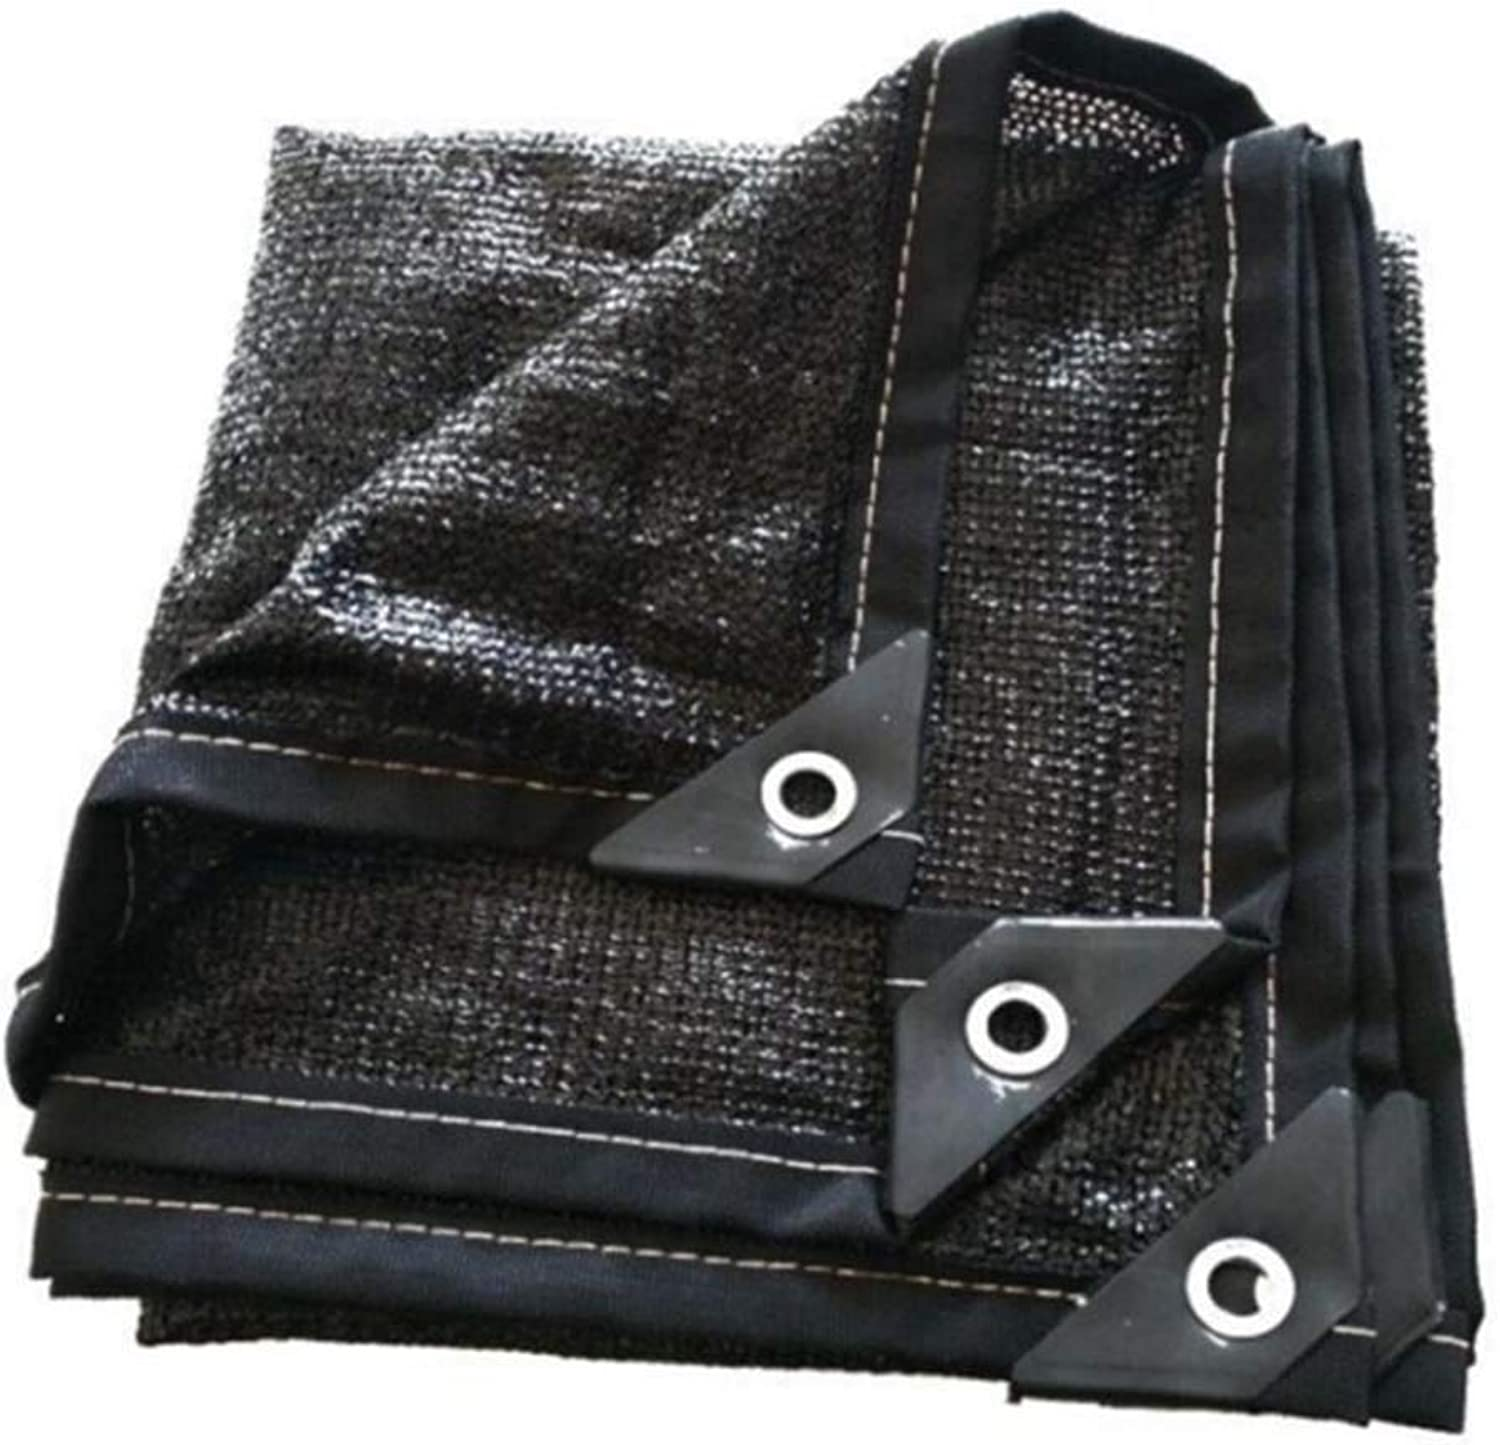 Shade Cloth, Shade Sails Shade Cloth Shading Net Sun Mesh 6pin Thickened Package Edge Decorative Potted Breathable Balcony and Other Uses (color   Black, Size   2  5)